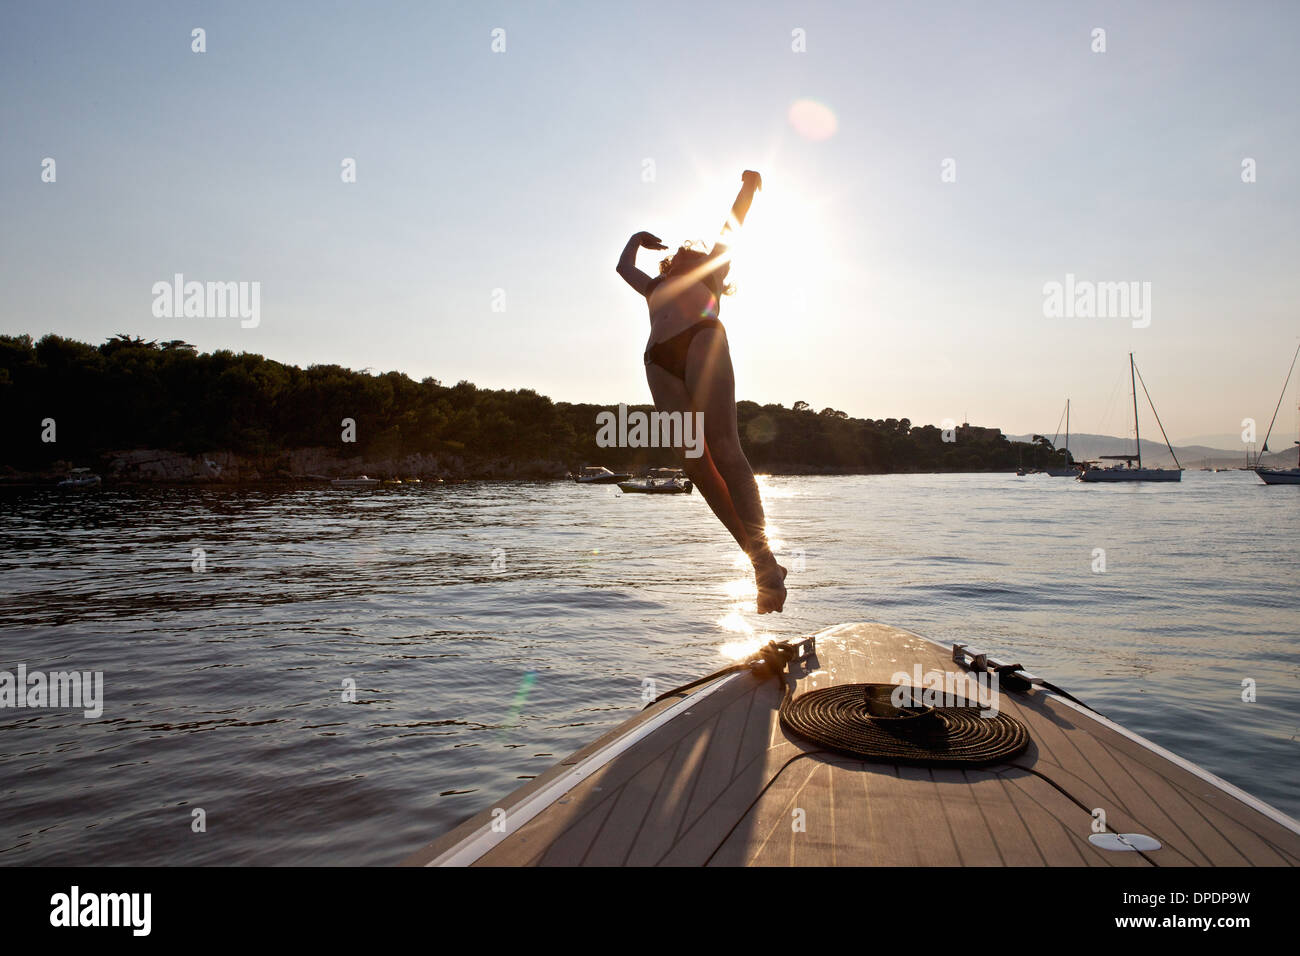 Woman diving from boat, Cannes Islands, Cote D'Azur, France - Stock Image